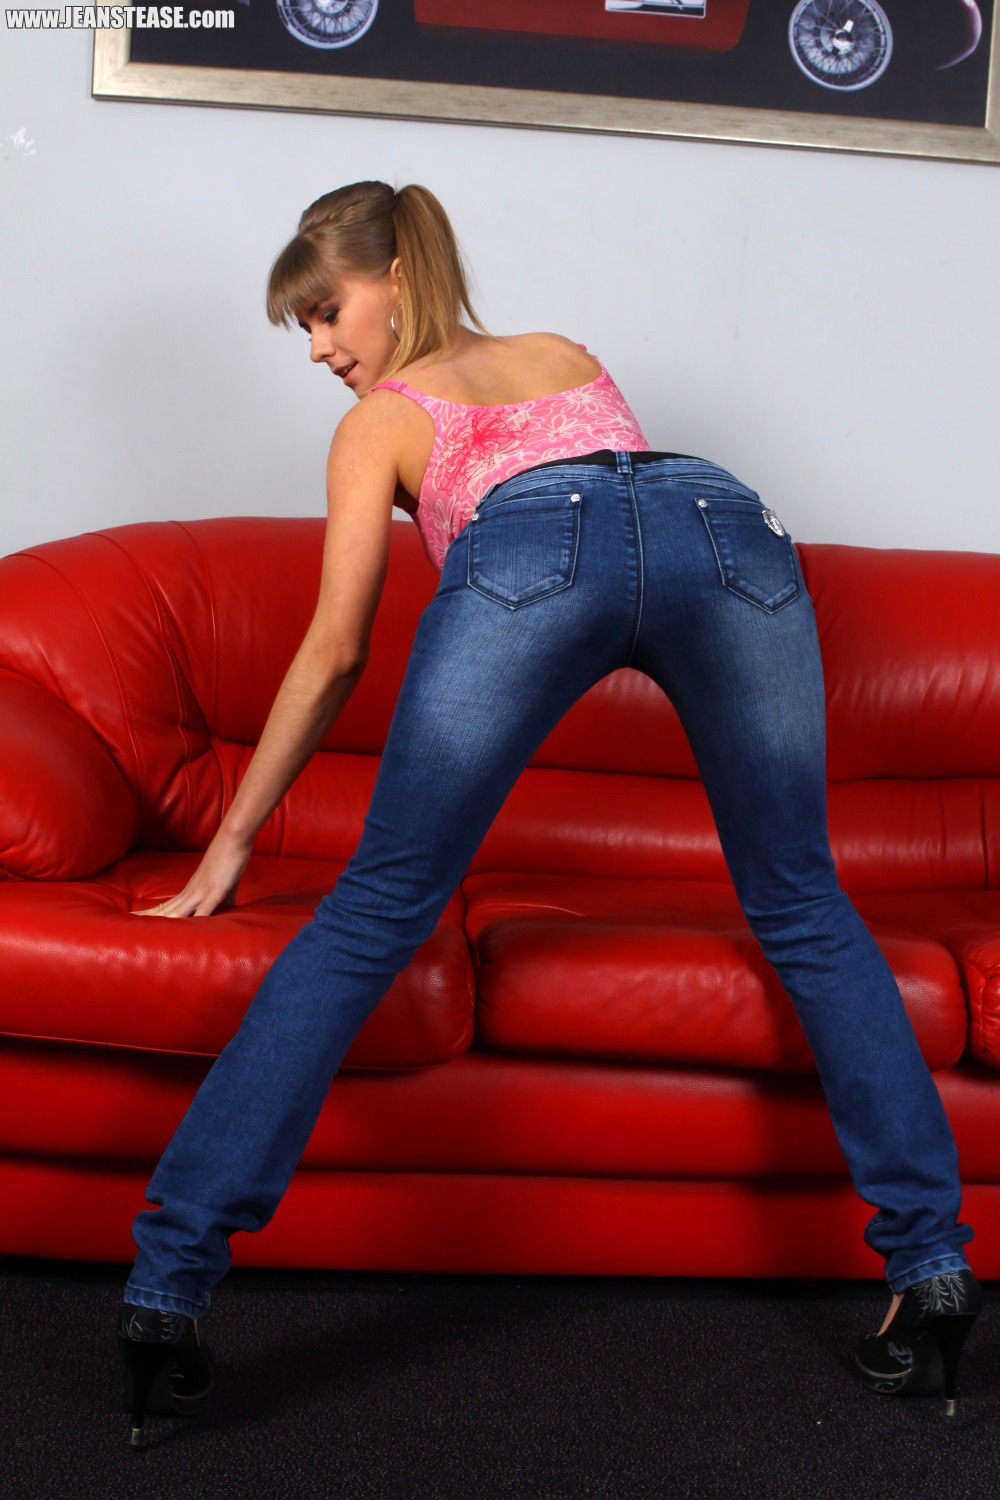 Jeans tease tight girls